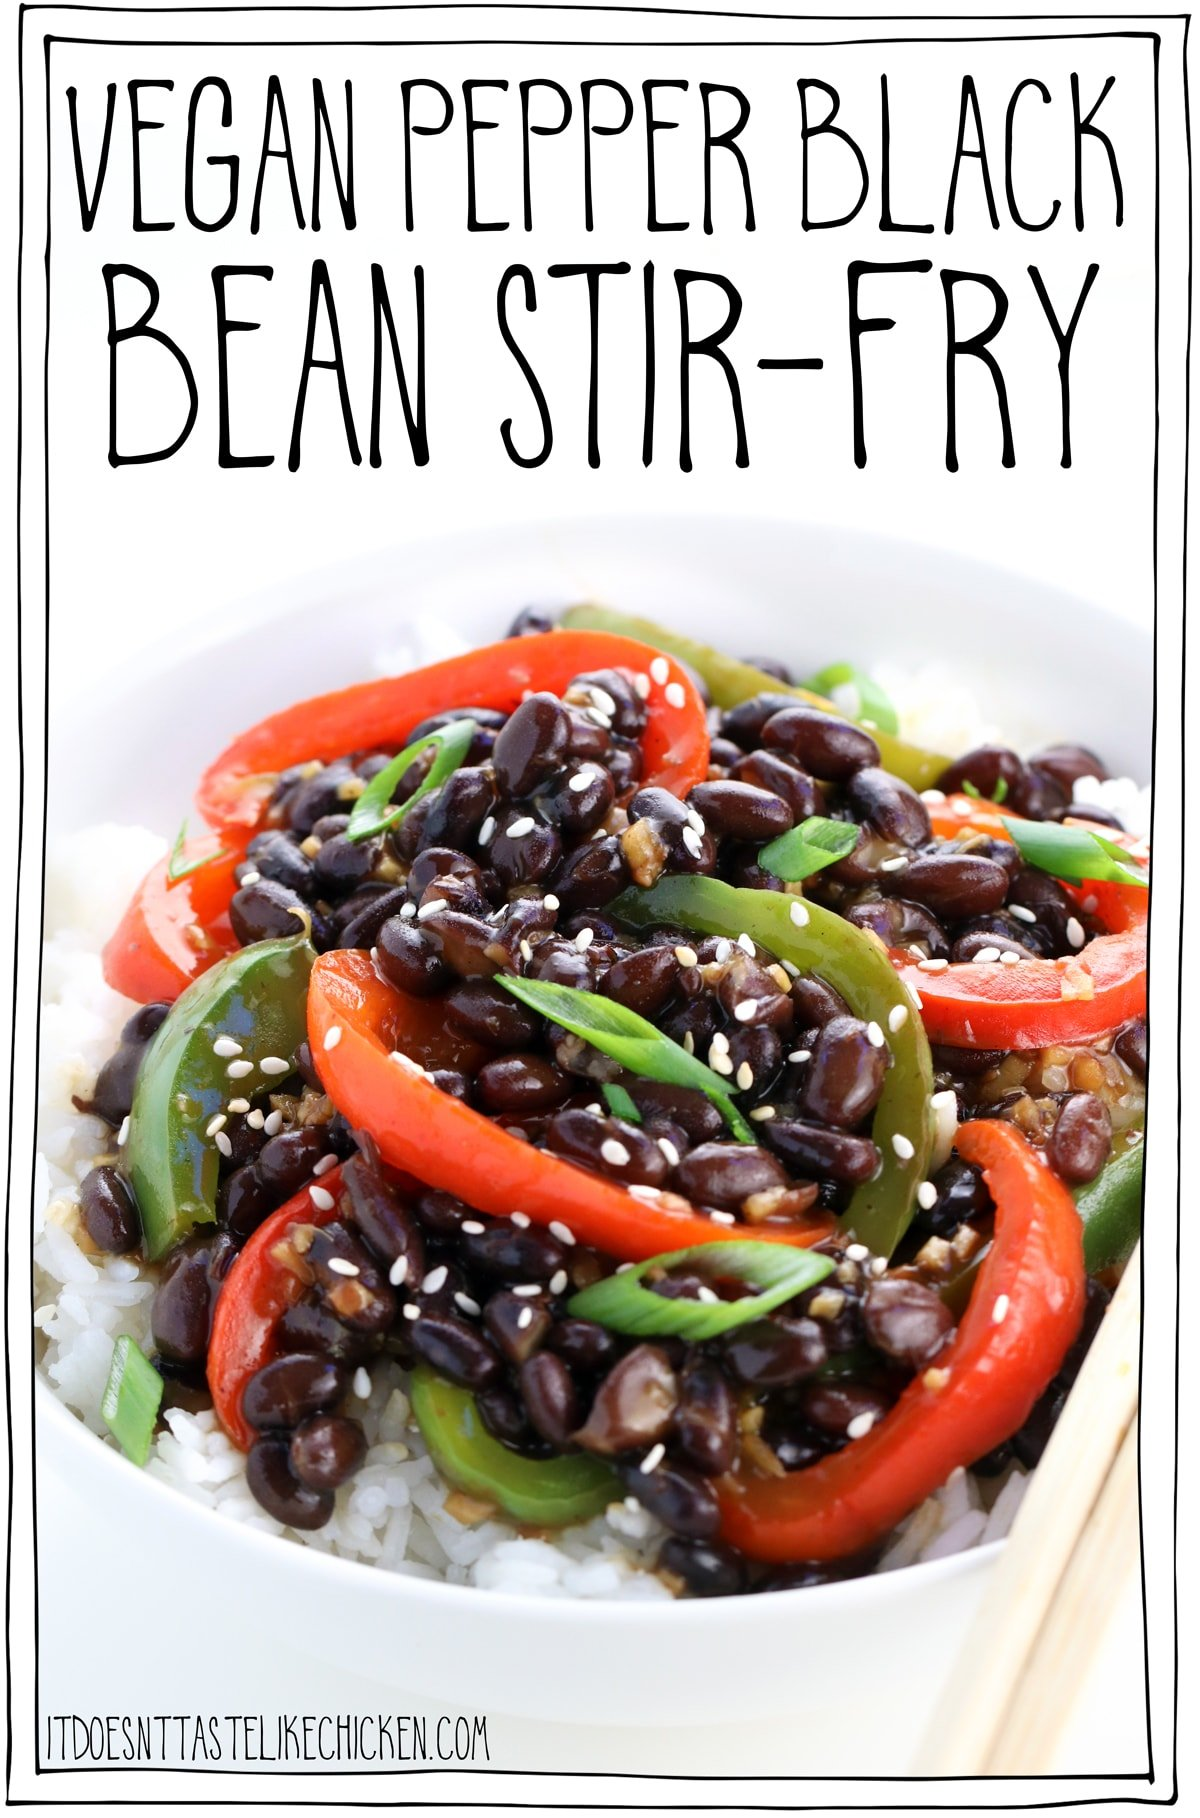 Vegan Pepper Black Bean Stir Fry Vegan Pepper Steak It Doesn T Taste Like Chicken